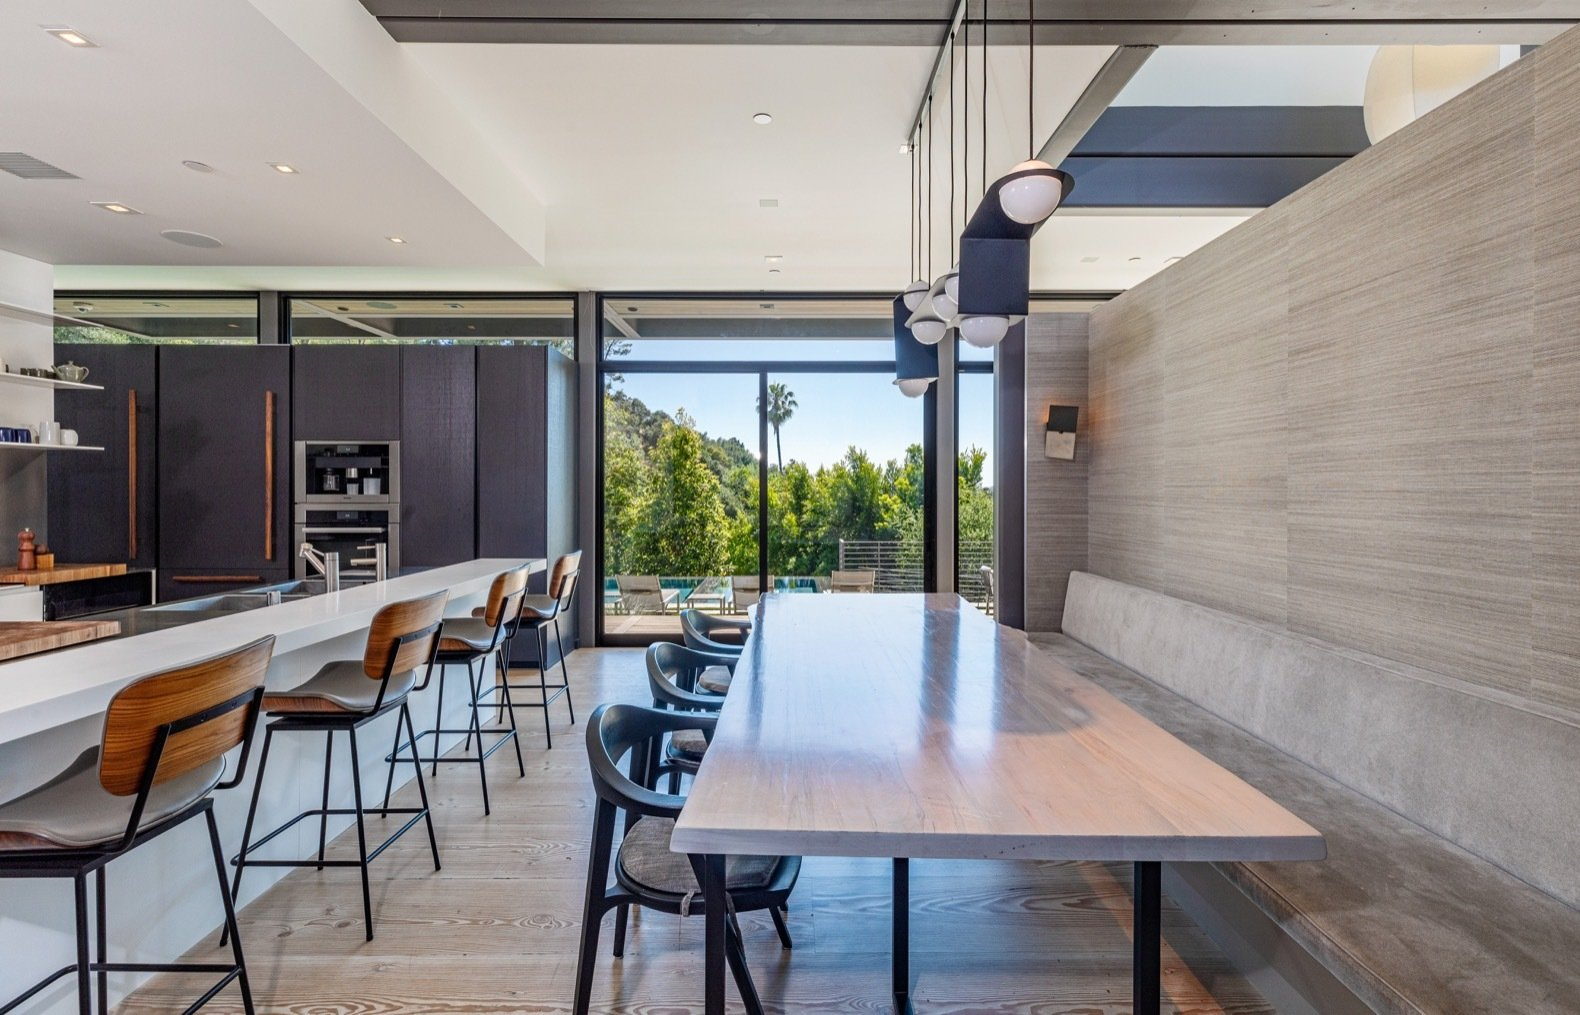 Dining Room, Table, Recessed Lighting, Light Hardwood Floor, Bench, Chair, and Accent Lighting The eat-in kitchen includes a banquette upholstered in Holly Hunt fabric. The custom pendant is by Lambert & Fils.  Photo 14 of 15 in Will Arnett Lists His Prefab-Hybrid Home in Beverly Hills for $11M